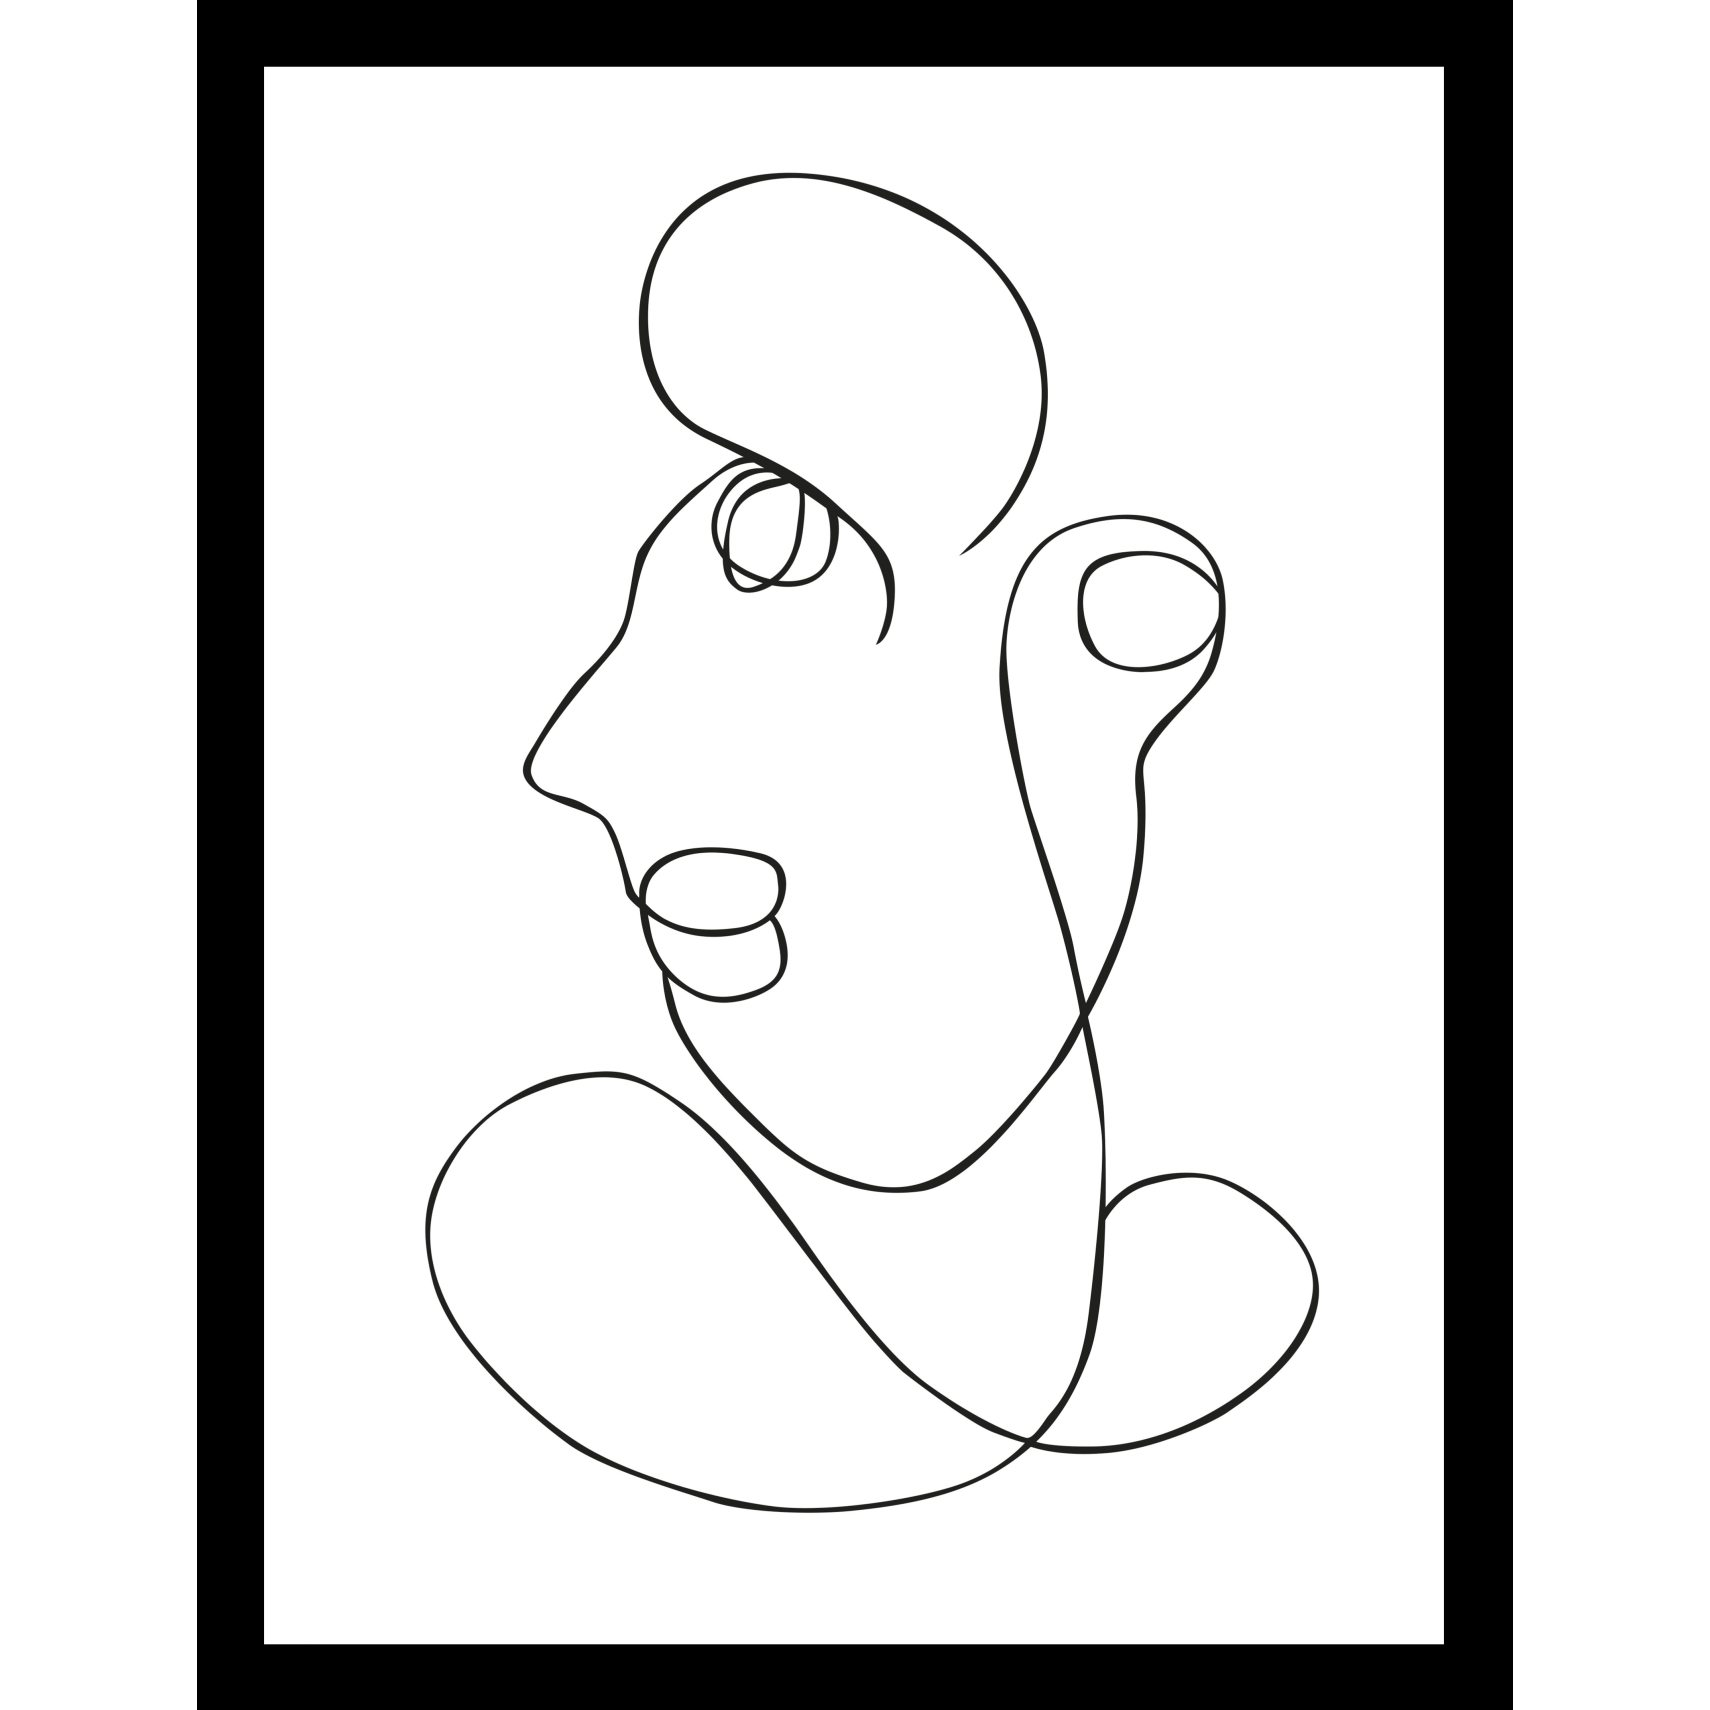 ART GALLERY Plakat 20 x 25 x 1,5 cm - One-line face III og ramme i 15 mm sort fyrretræ